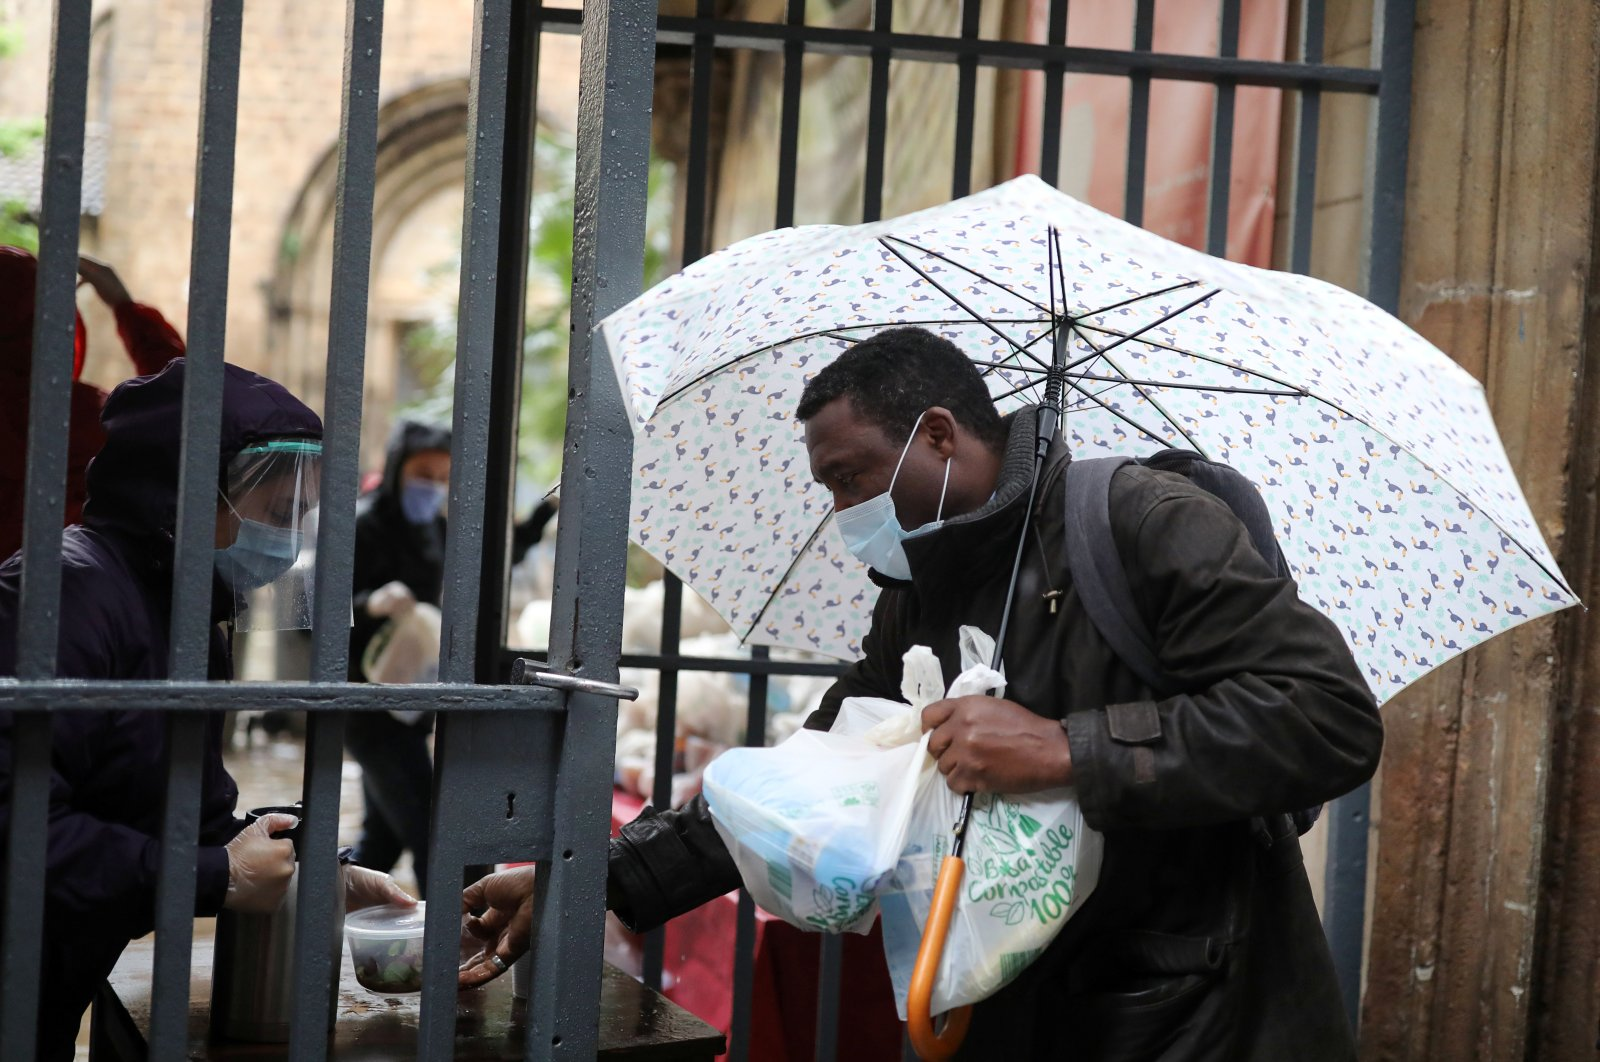 Volunteers give free food packages for a man amid economic hardship outside parish church of Santa Anna, amid the spread of the coronavirus disease (COVID-19), in Barcelona, Spain, April 21, 2020. (Reuters Photo)